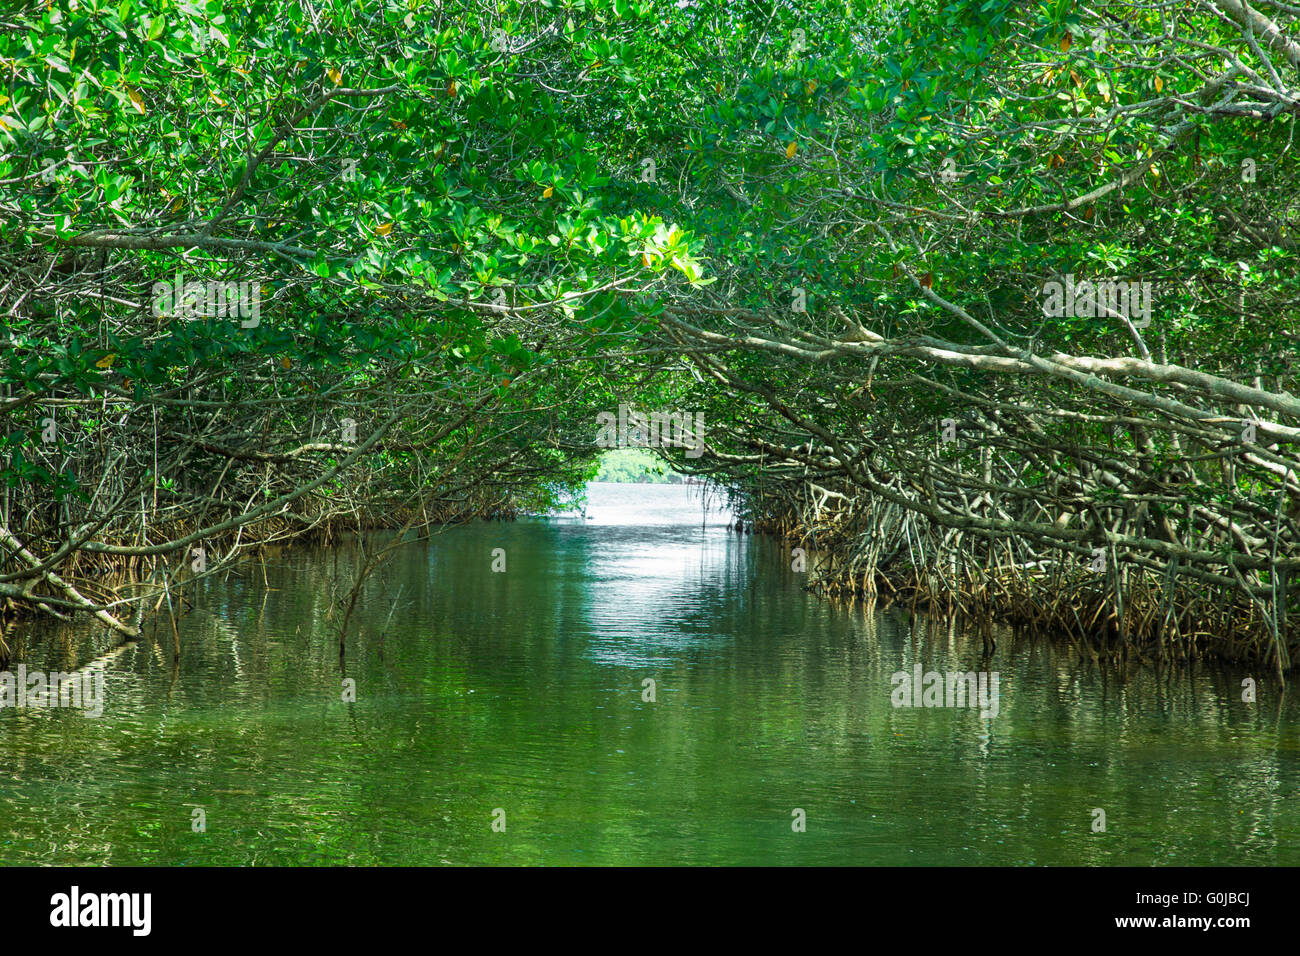 Eco-tourism image of mangroves at Everglades National Park in Florida USA - Stock Image